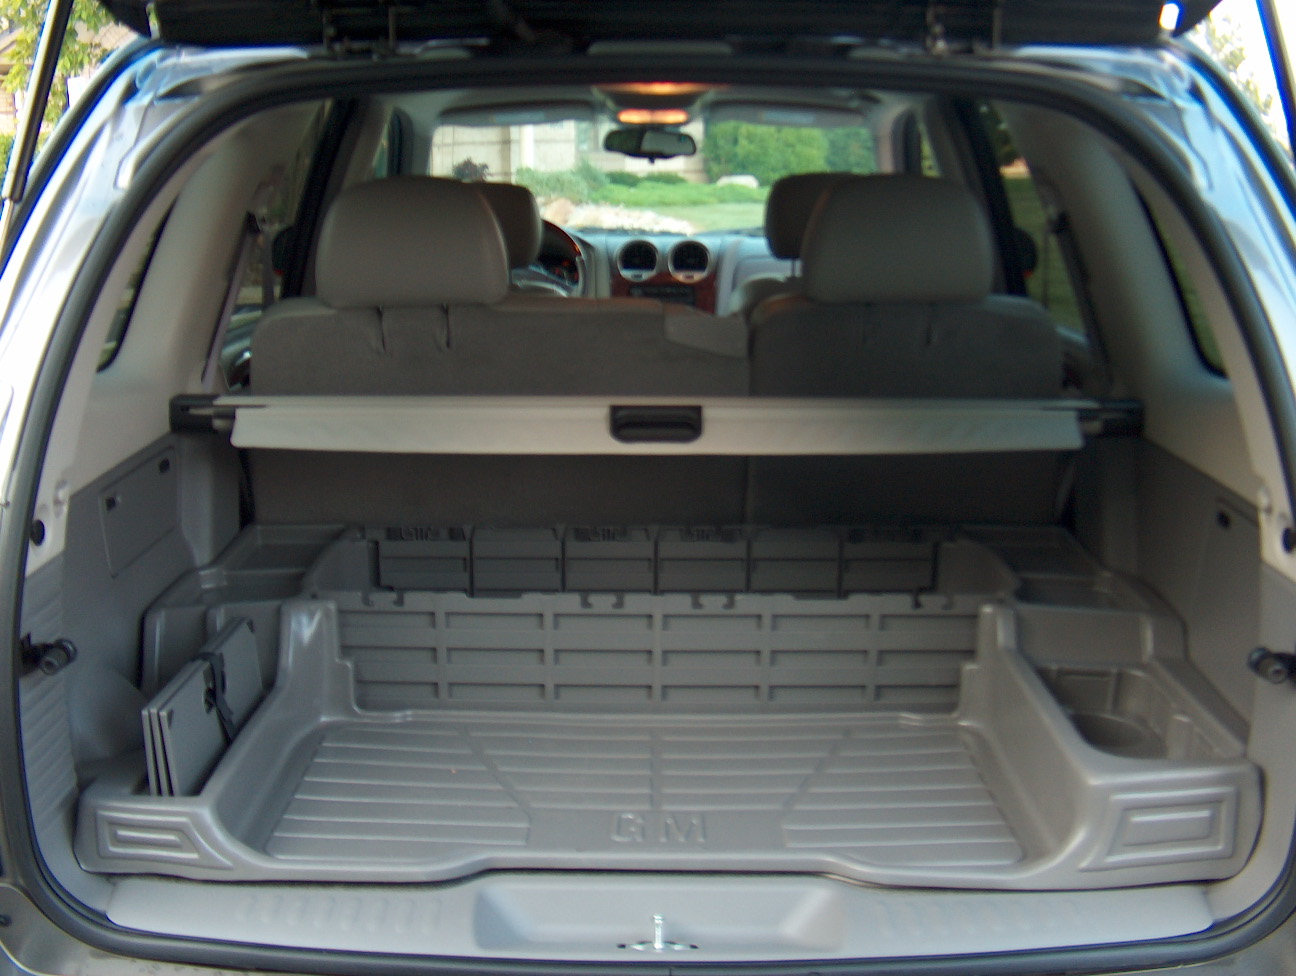 GMC ENVOY - Review and photos